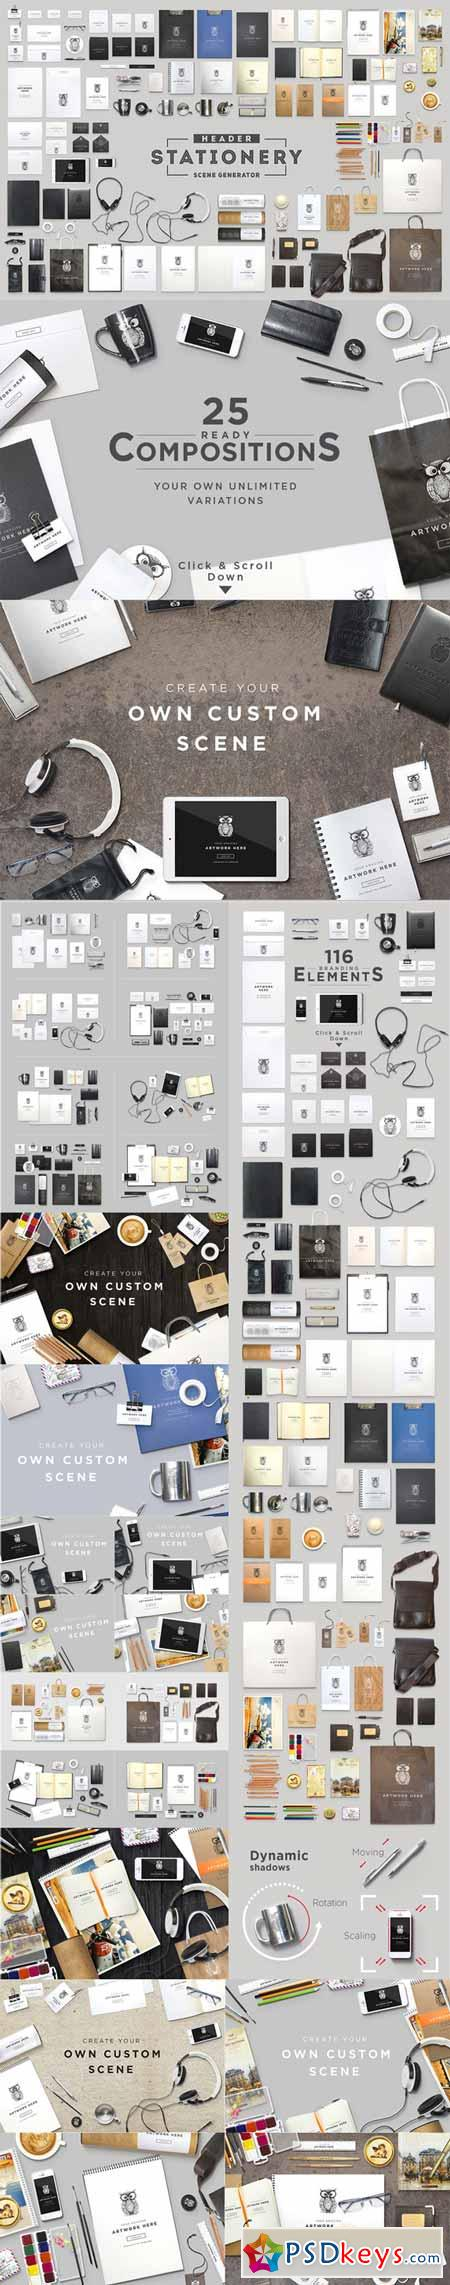 Header Stationery Scene Generator 144381